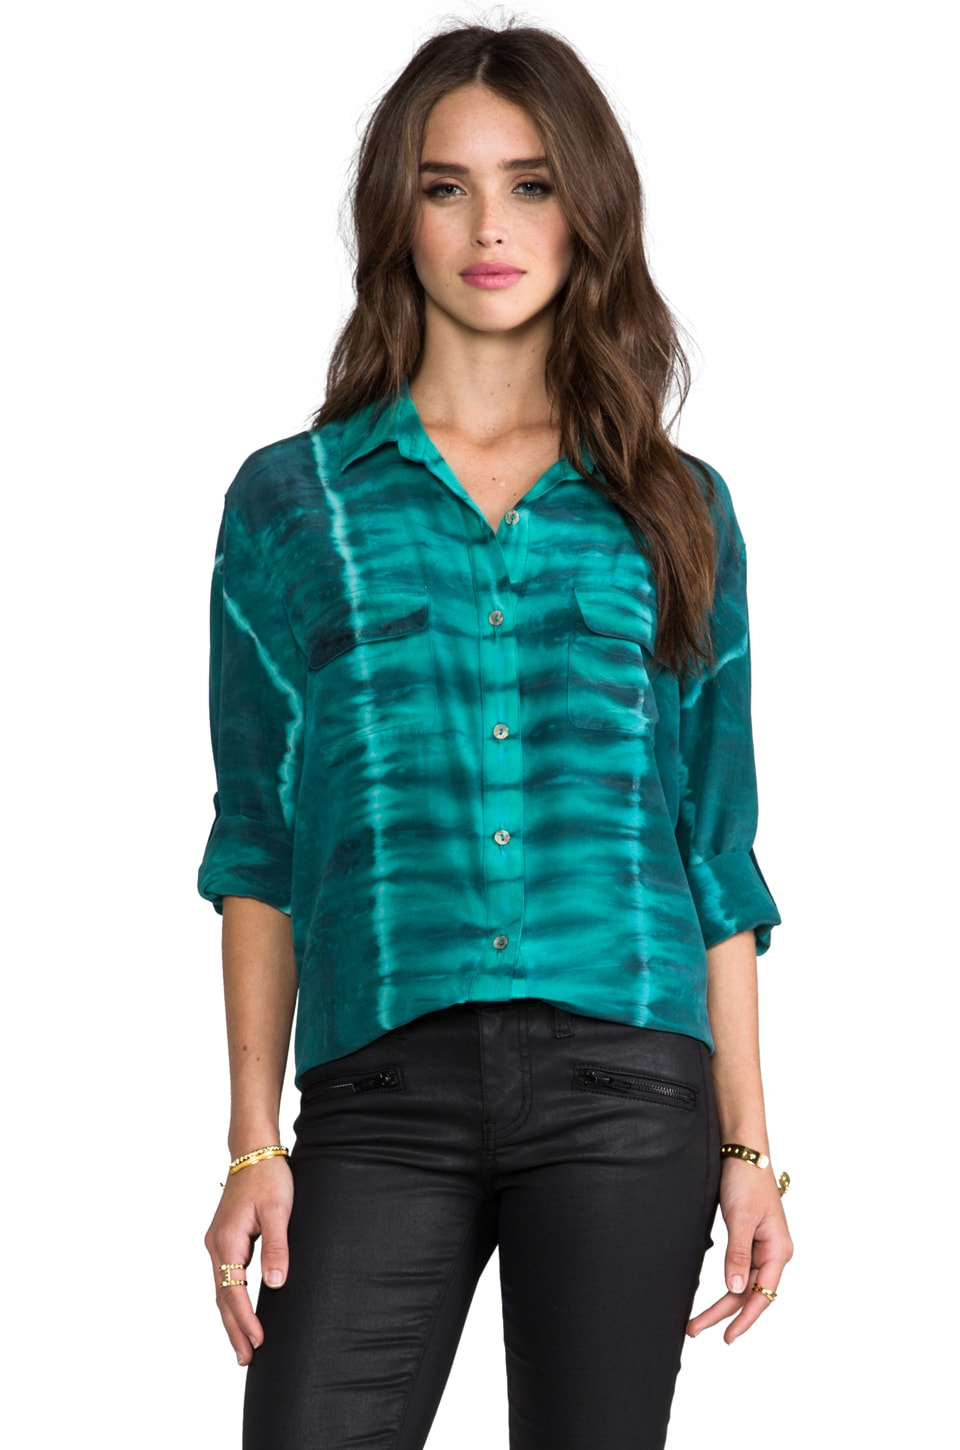 Gypsy 05 Silk Button Down with Pockets en Bleu canard